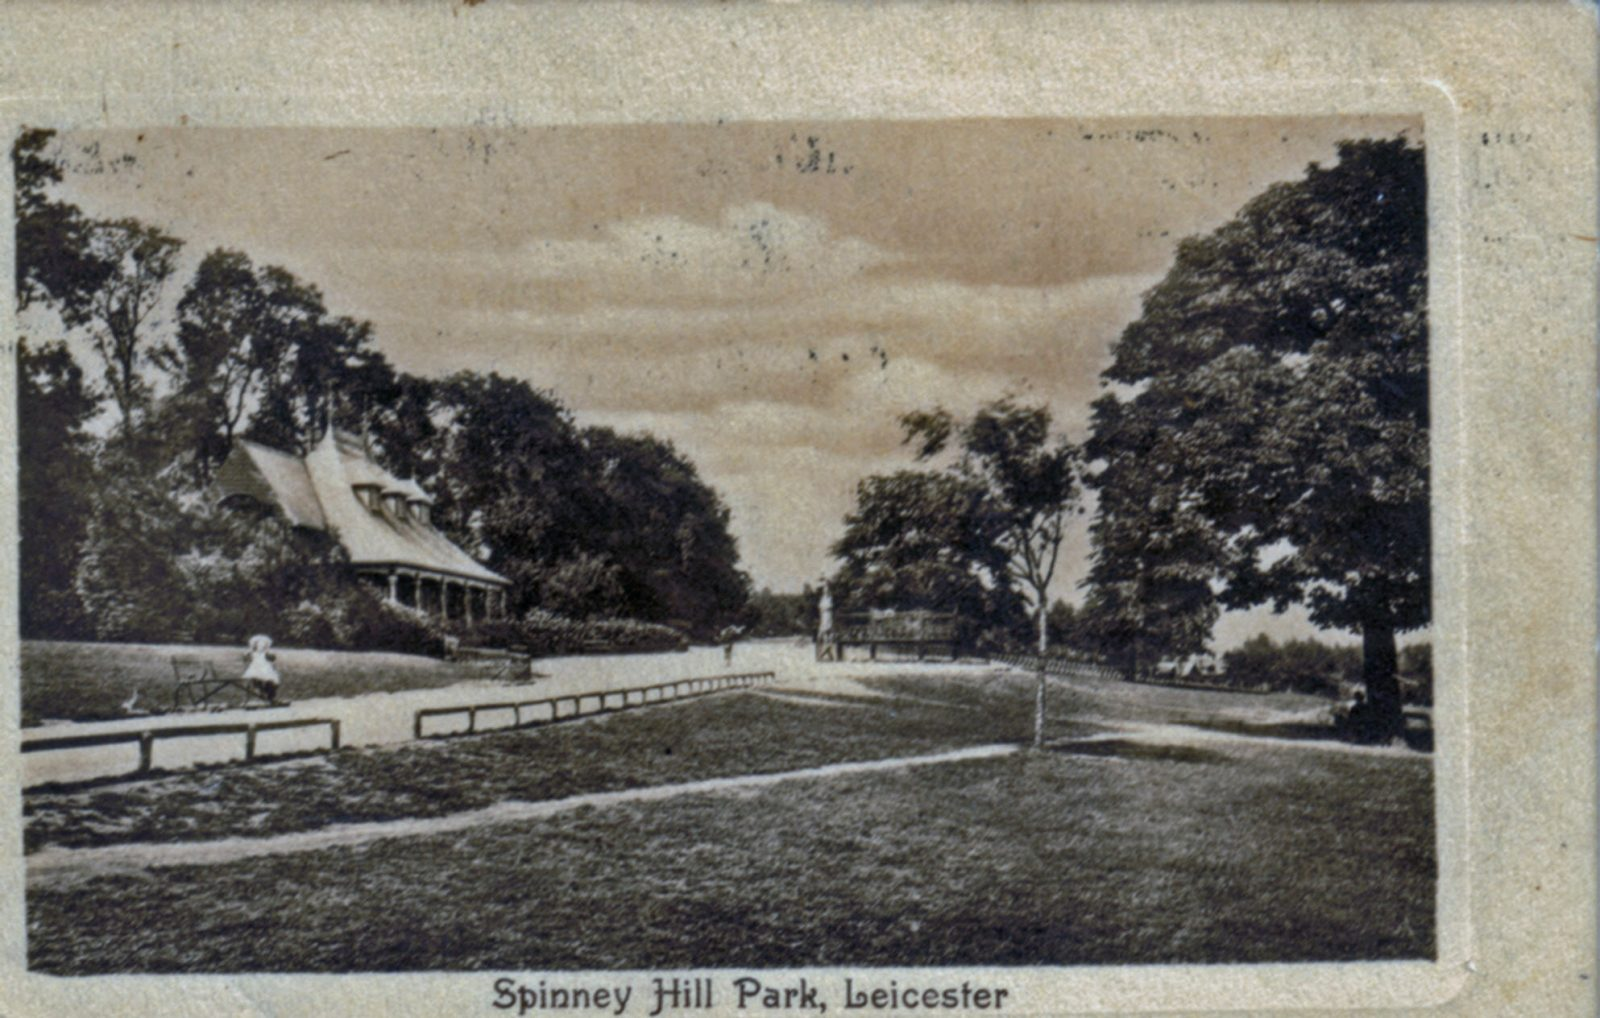 Spinney Hill Park, Leicester. 1901-1920: The Pavilion and avenue with children sitting. Franked 1910 (File:1251)